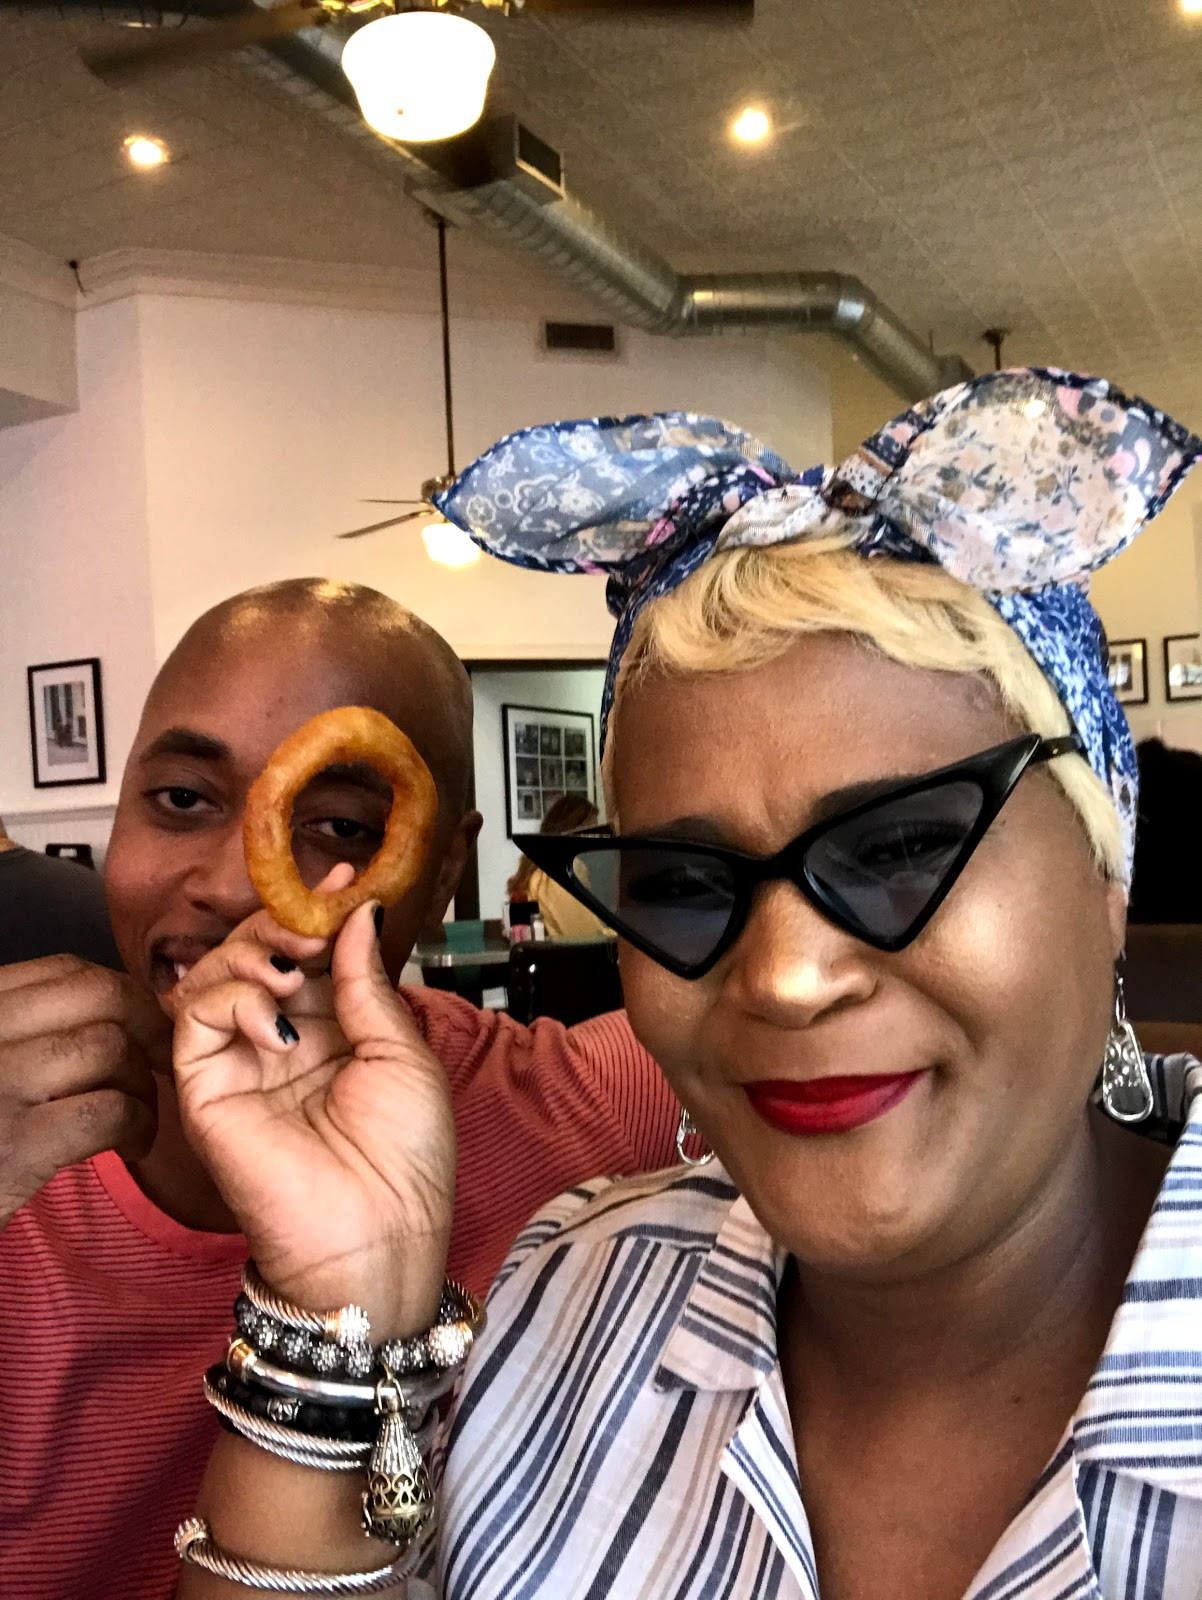 Image: Tangie and her Husband eating onion rings at Honky's burger bar in Bishop Arts District